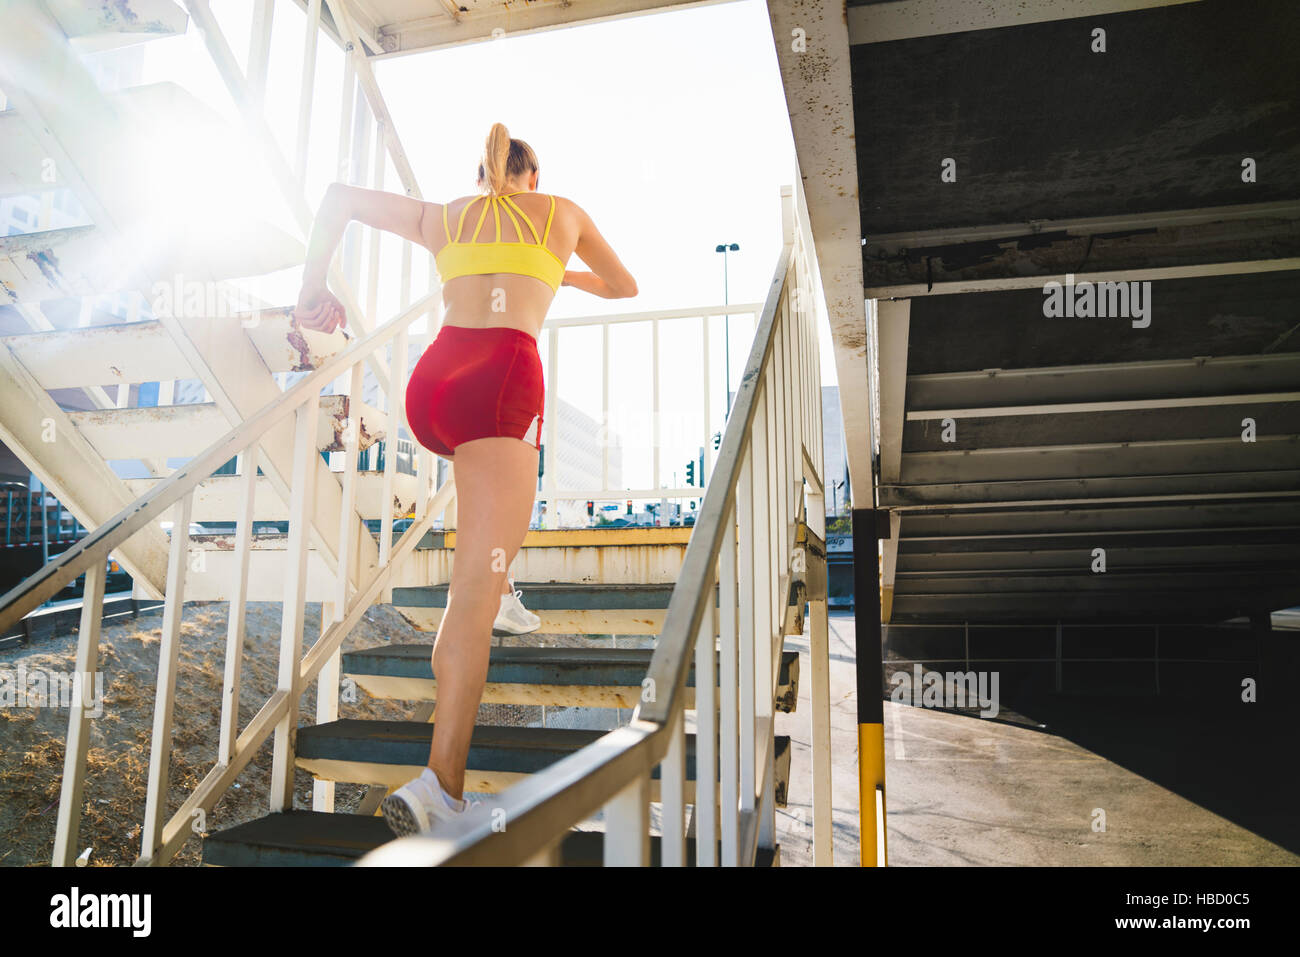 Young woman exercising in urban environment, running up stairs, rear view Stock Photo